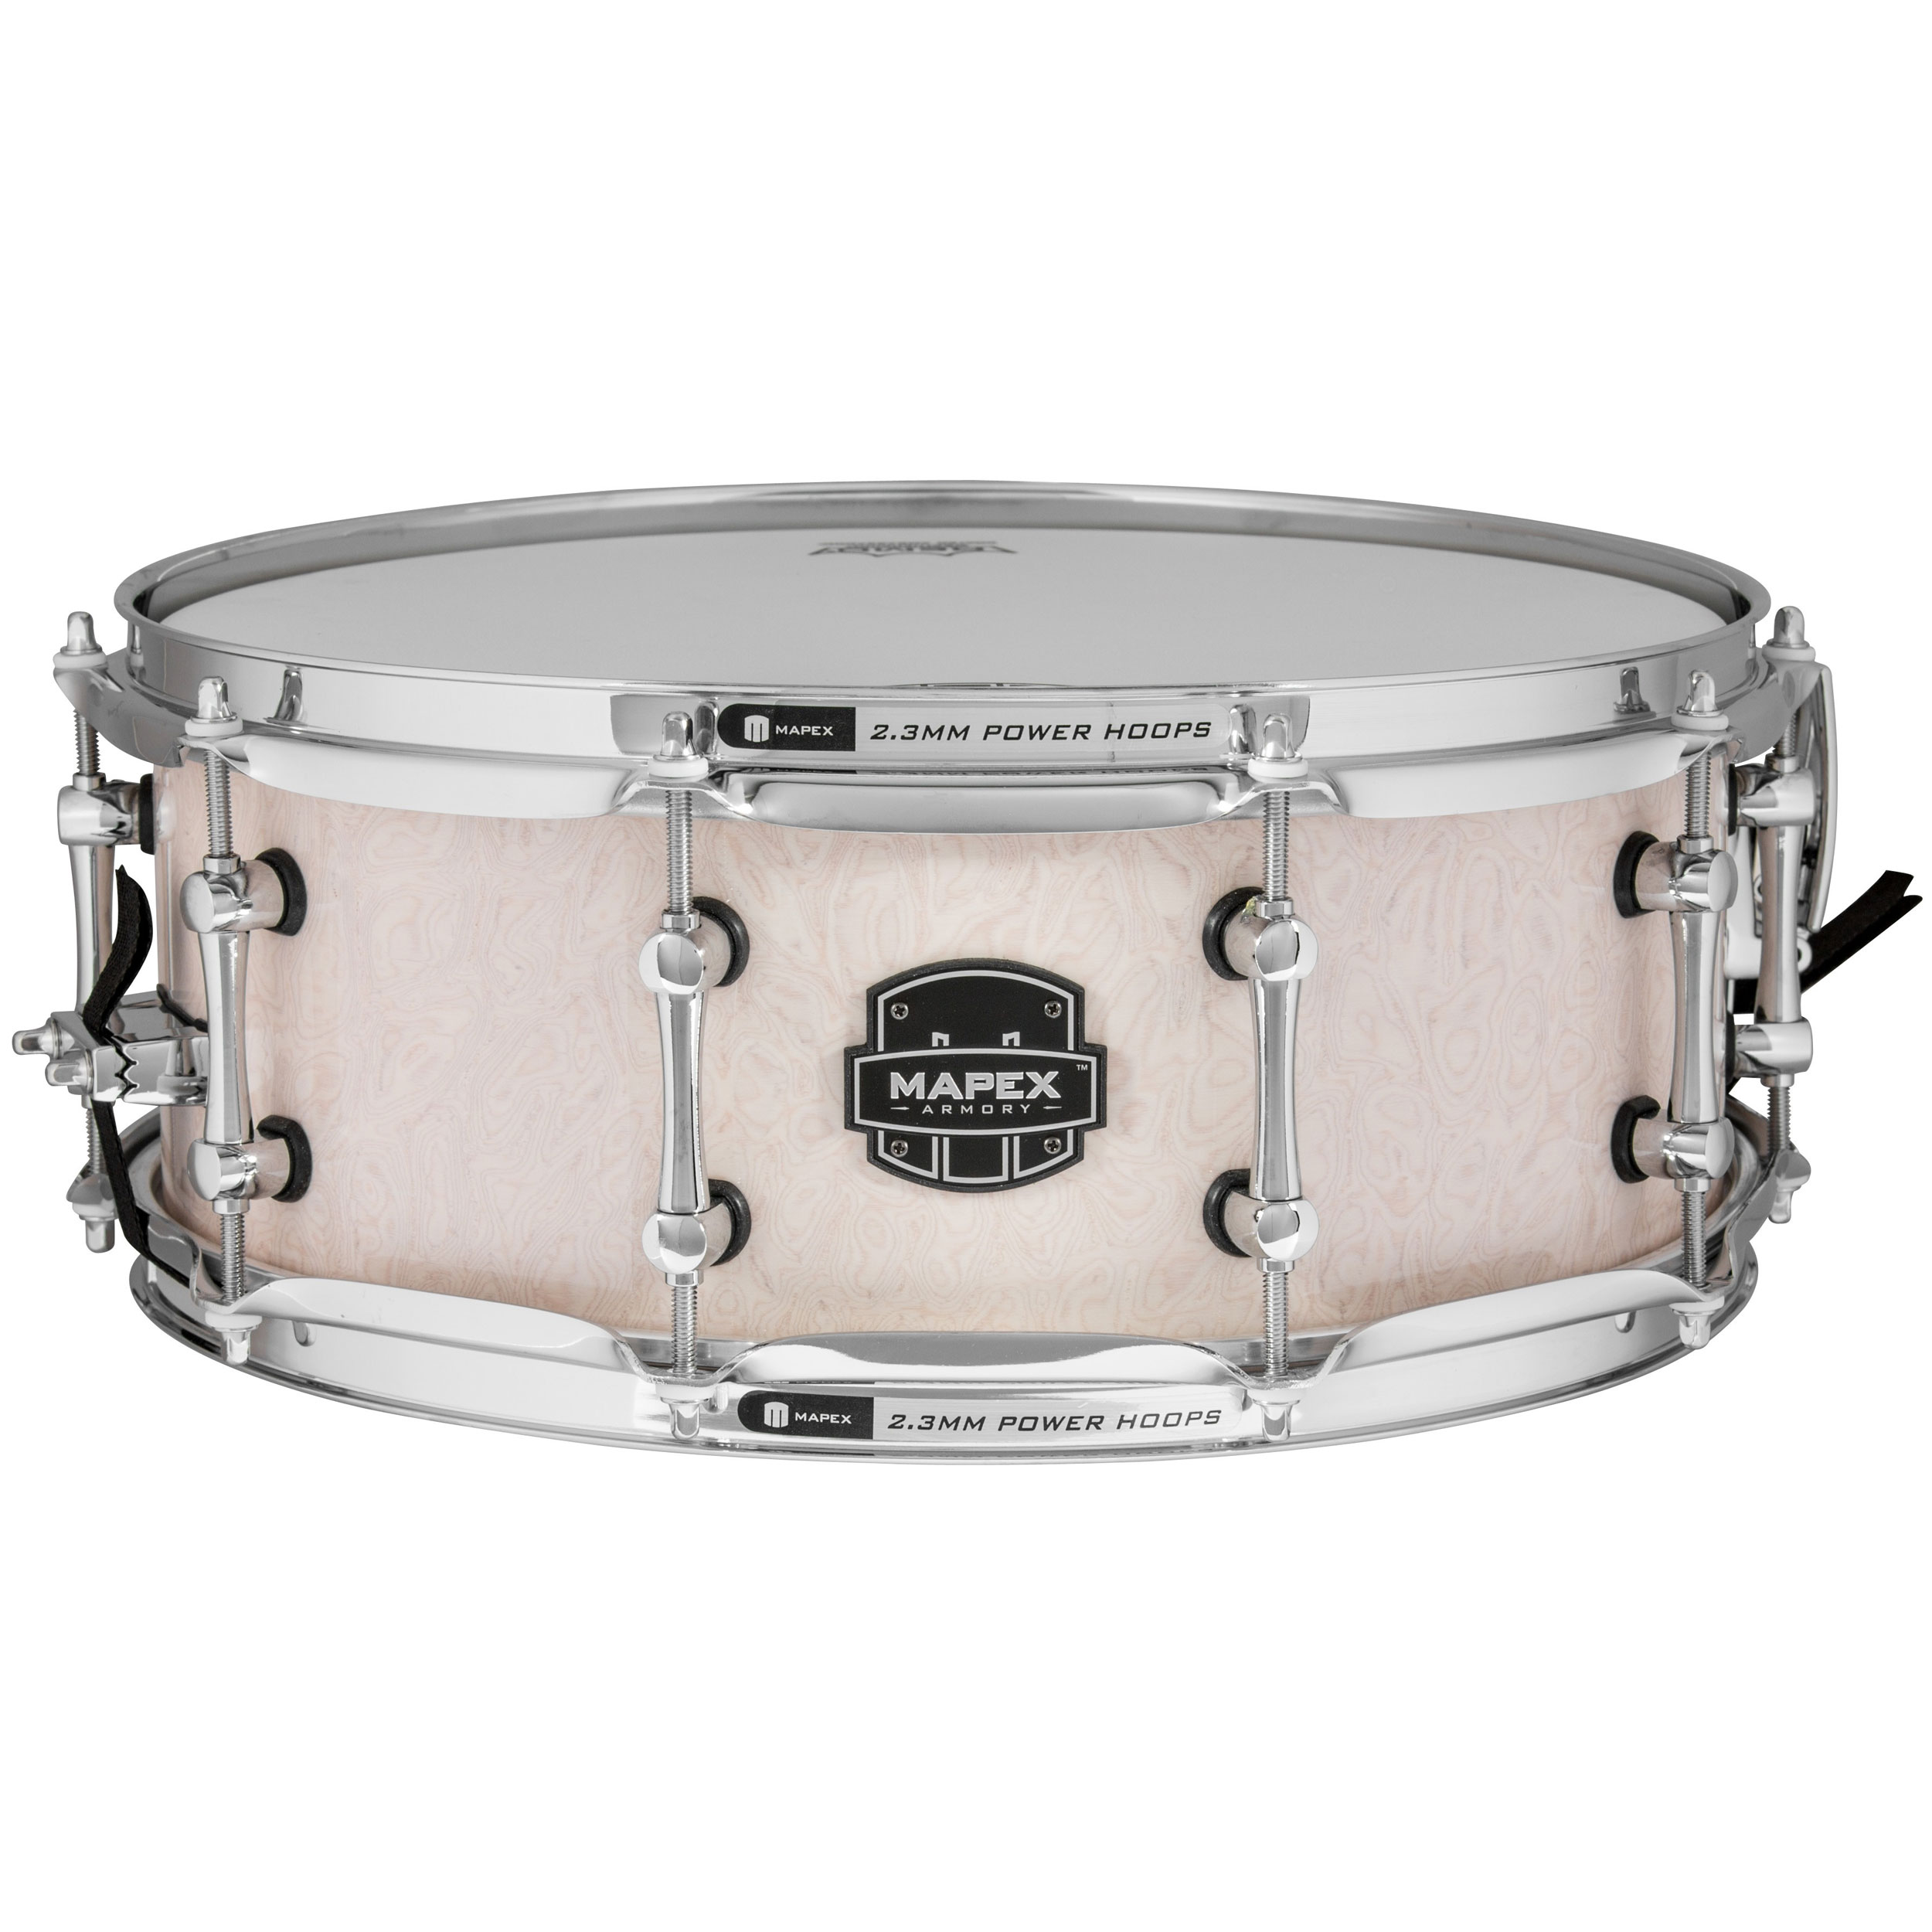 mapex 5 5 x 14 armory peacemaker maple walnut snare drum armw4550kcai. Black Bedroom Furniture Sets. Home Design Ideas